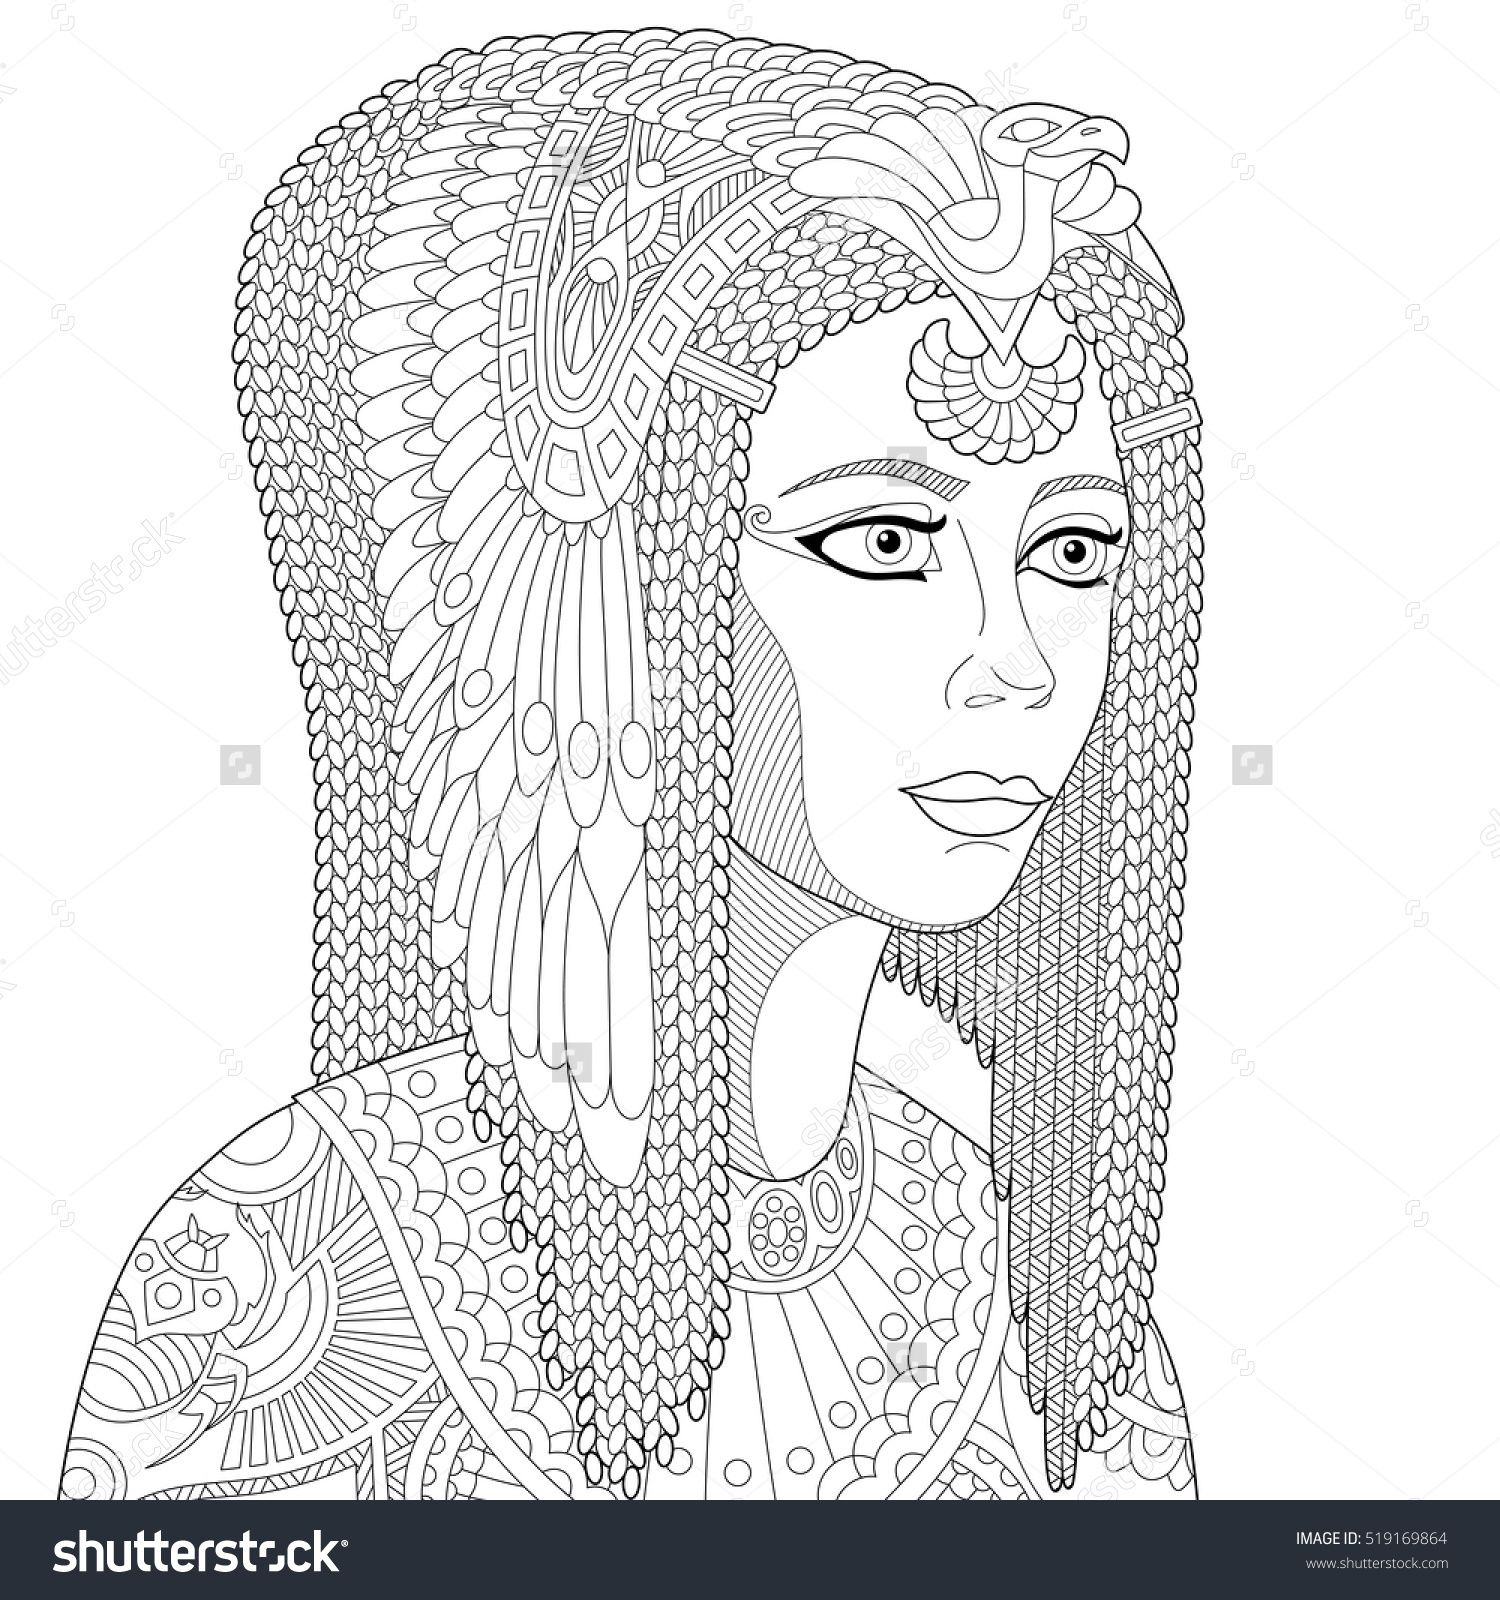 Stylized Cartoon Ancient Egyptian Queen Cleopatra Nefertiti Isolated On White Background Freehand Sketch For Adult Anti Stress Coloring Book Page With